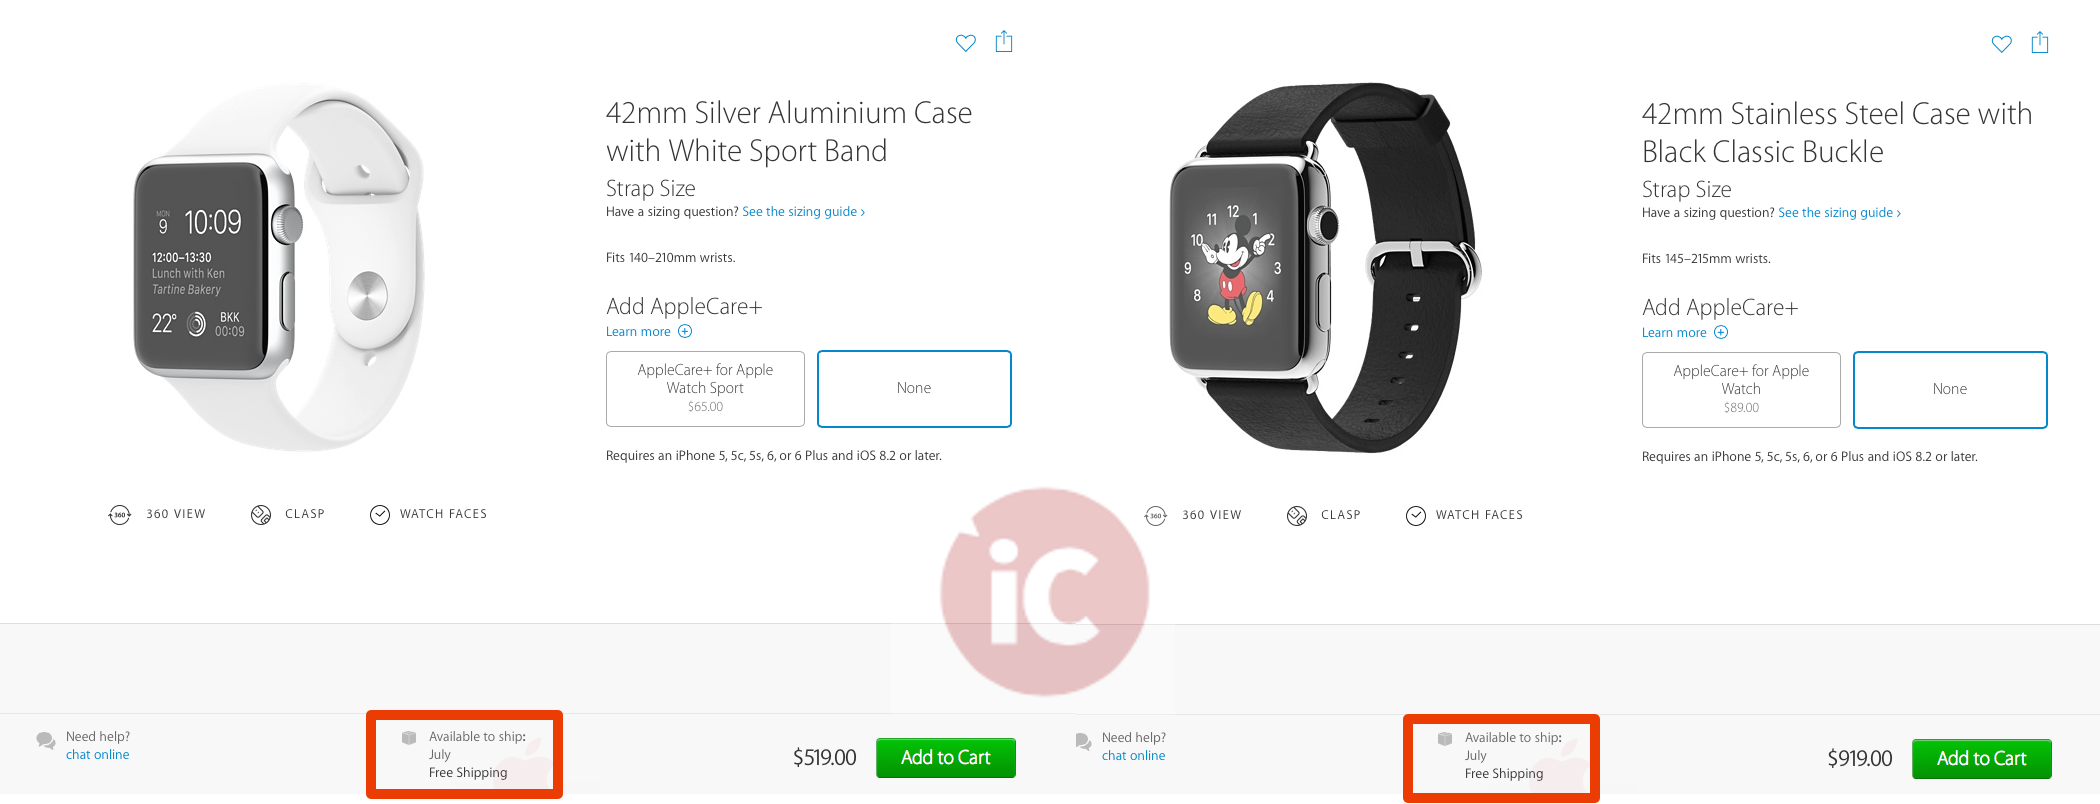 Apple_Watch_42mm_July_estimated_shipping